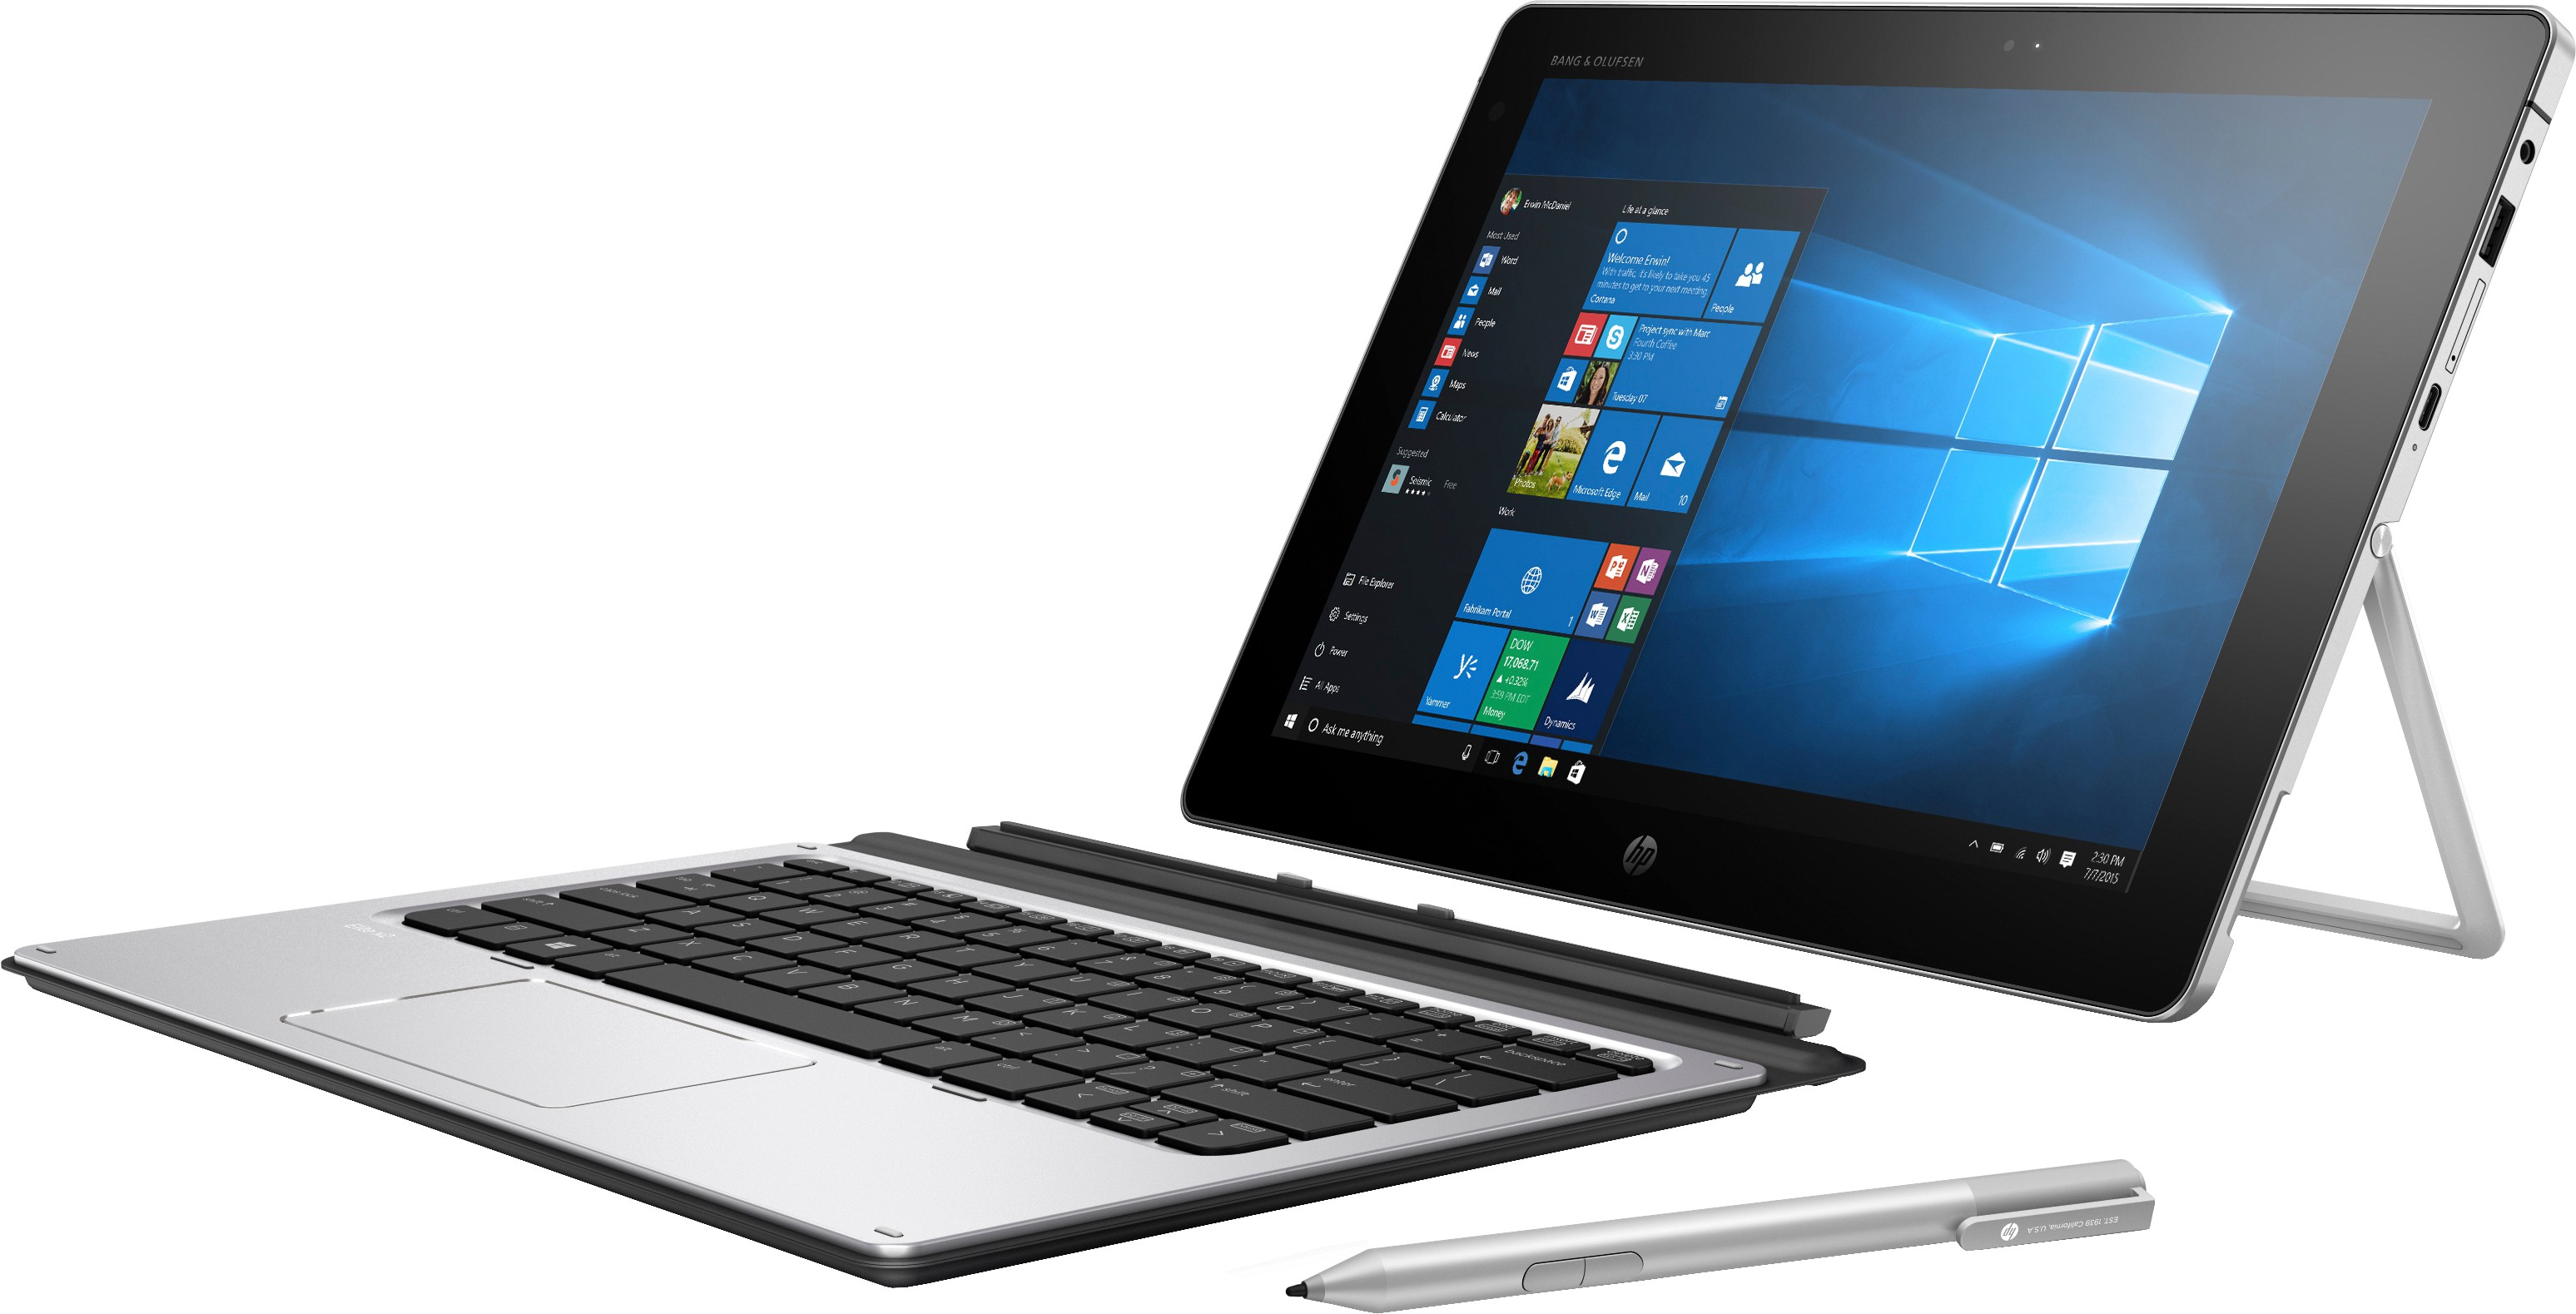 hp laptops with windows 10 professional in india